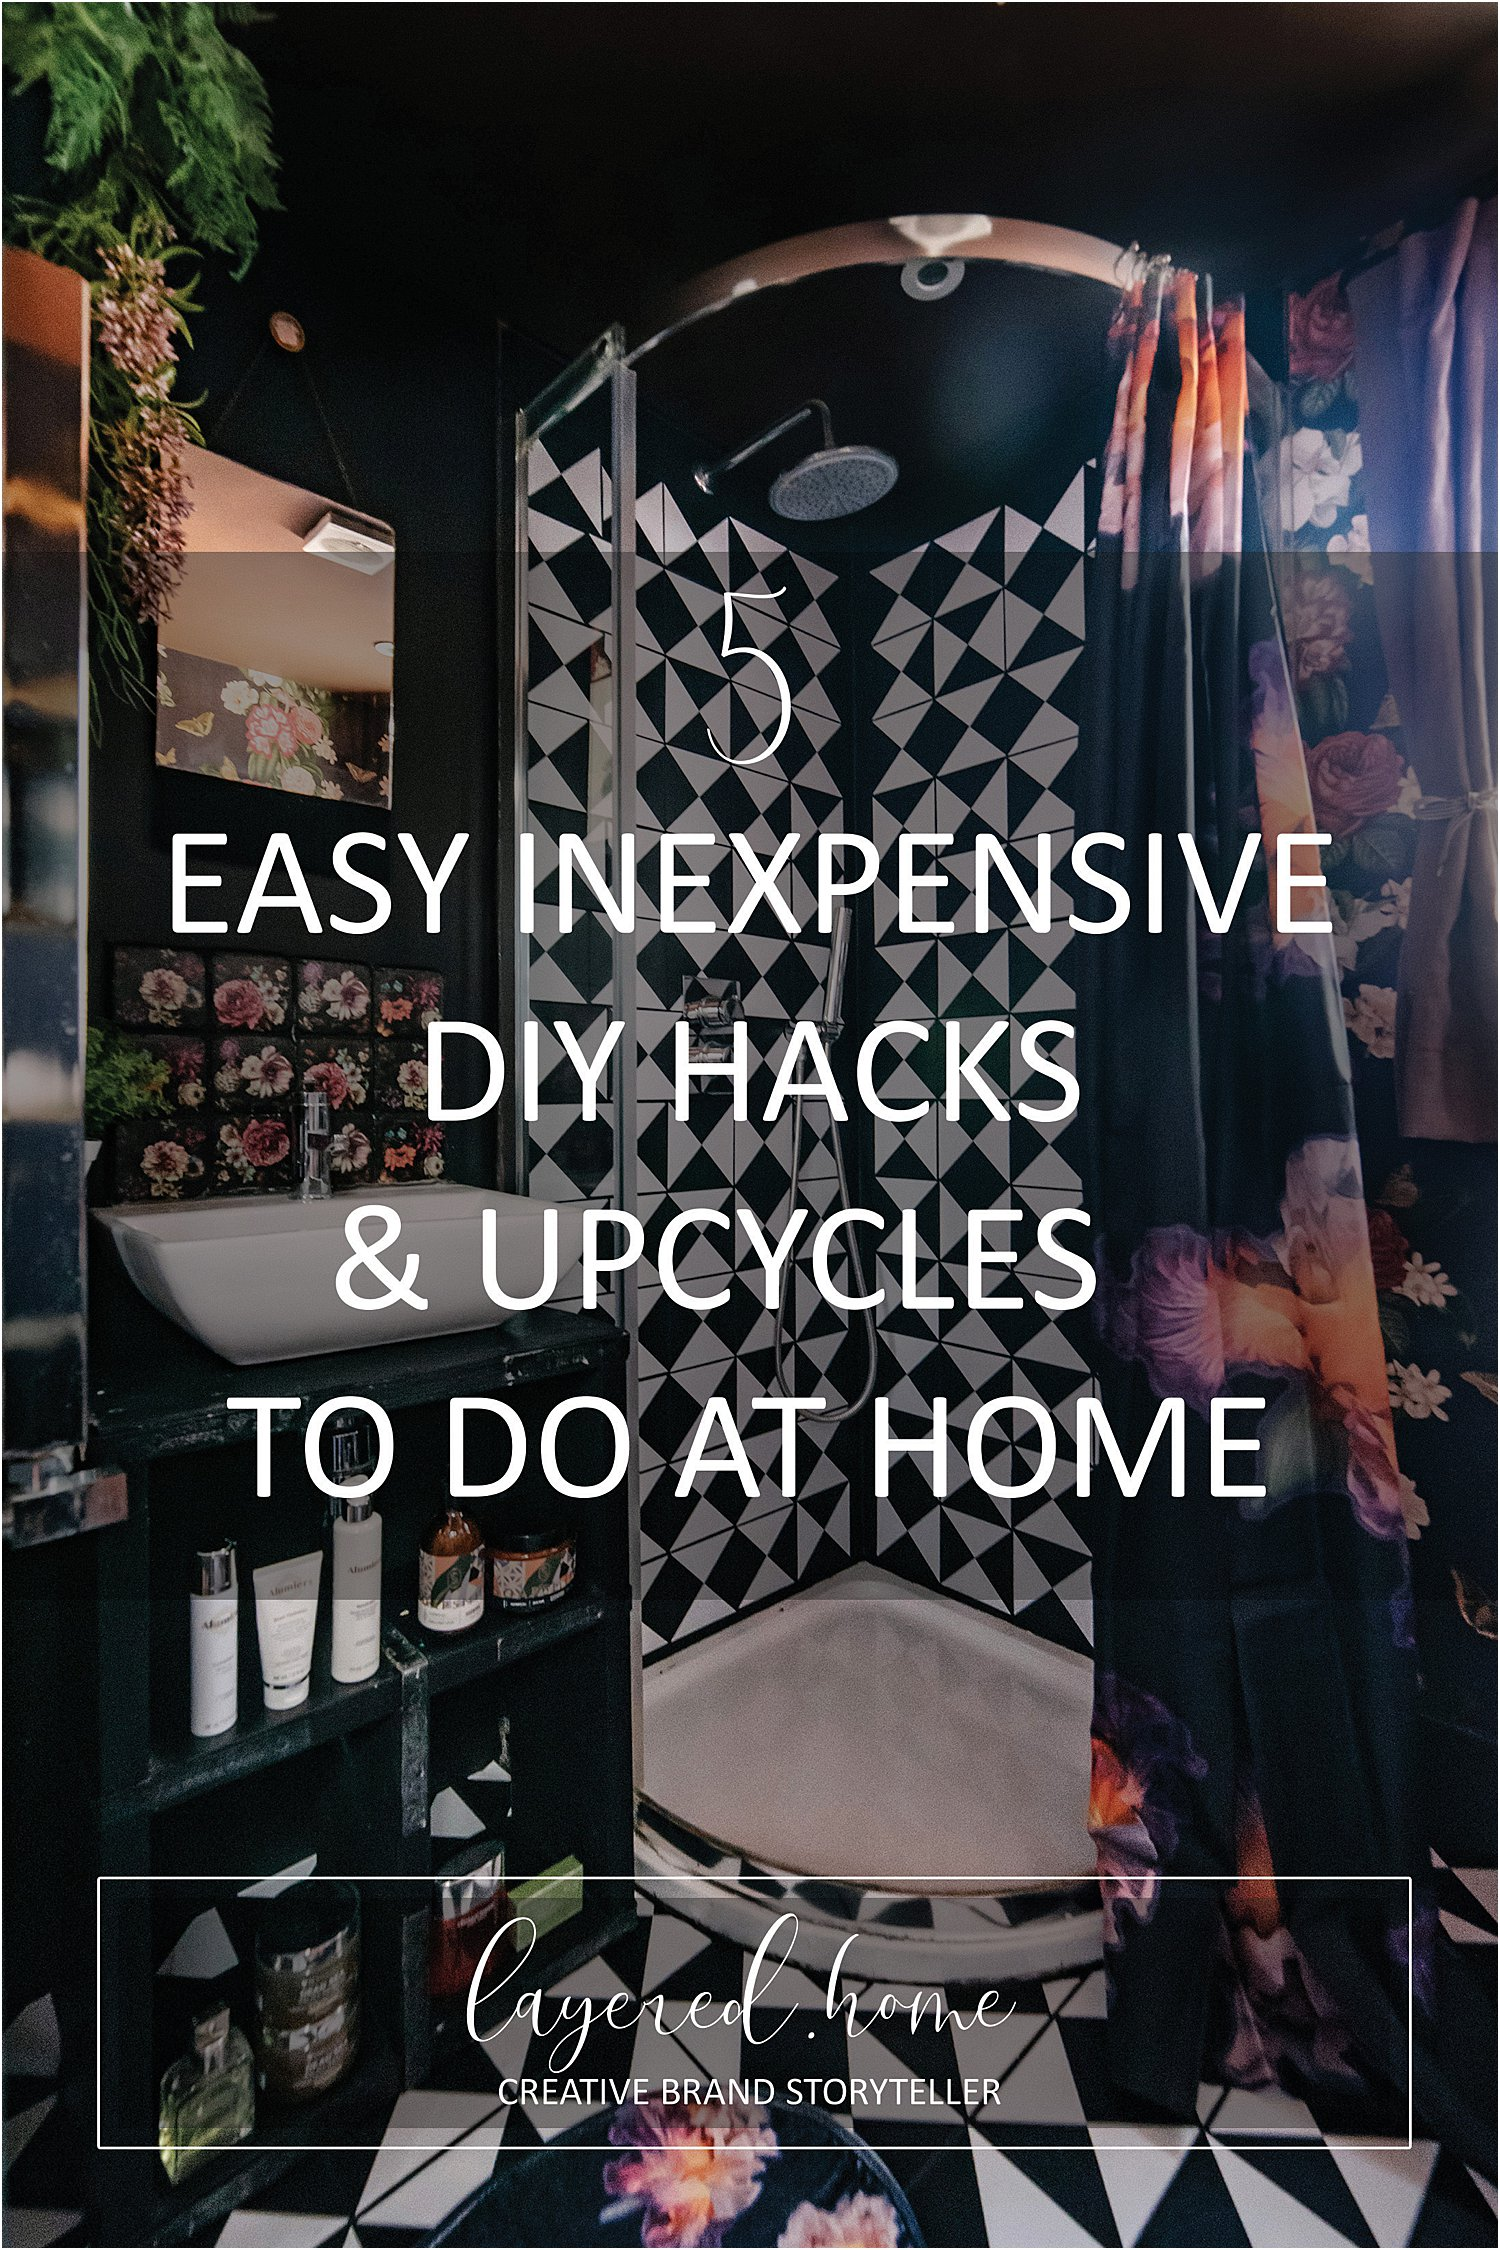 5-quick-easy-hacks-upcycle-in-the-home-interiors-ideas-layered-home